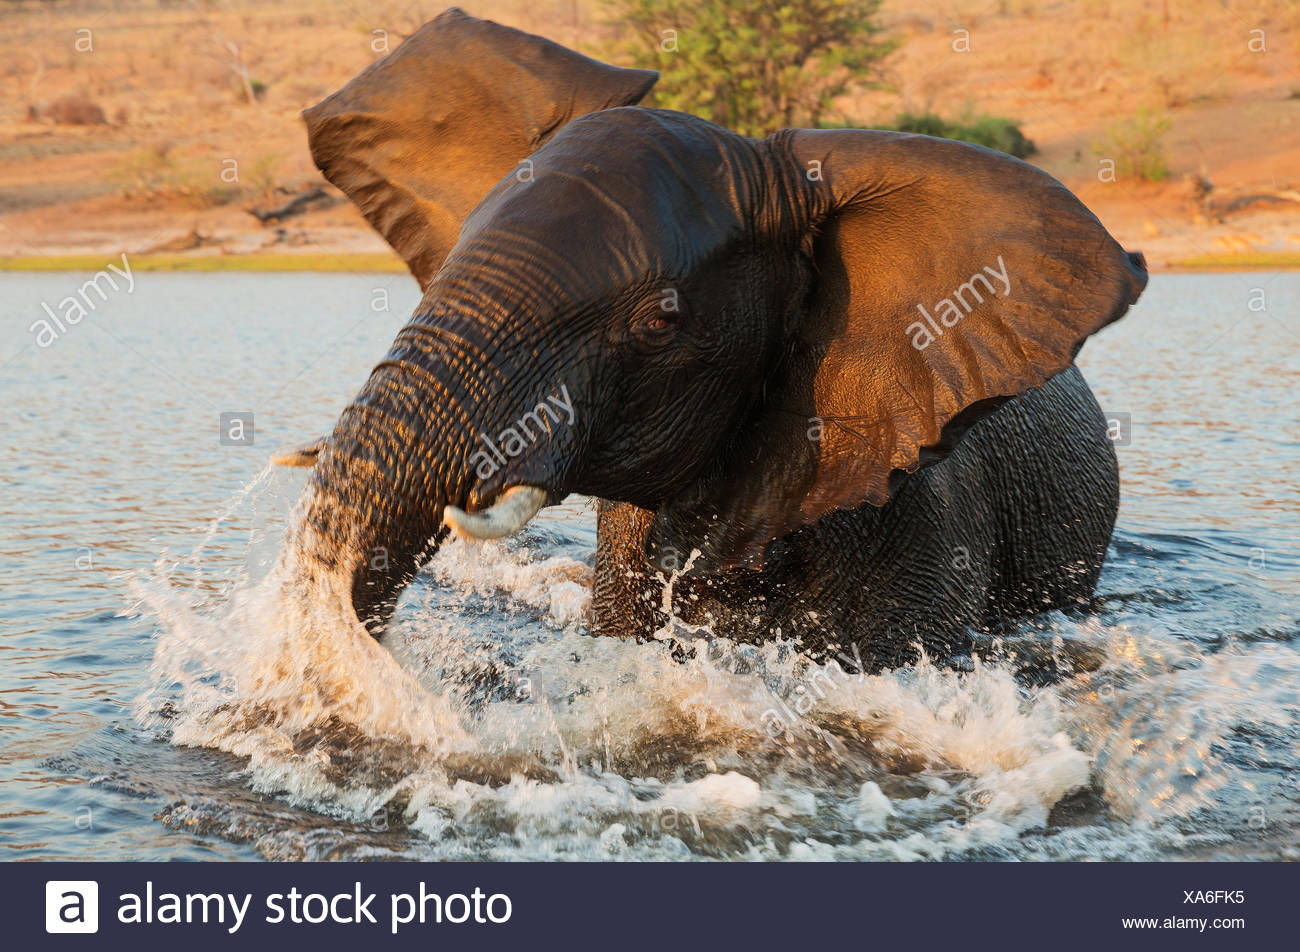 African Elephant (Loxodonta africana), bull in the Chobe River gets angry at the very near boat with the photographer - Stock Image